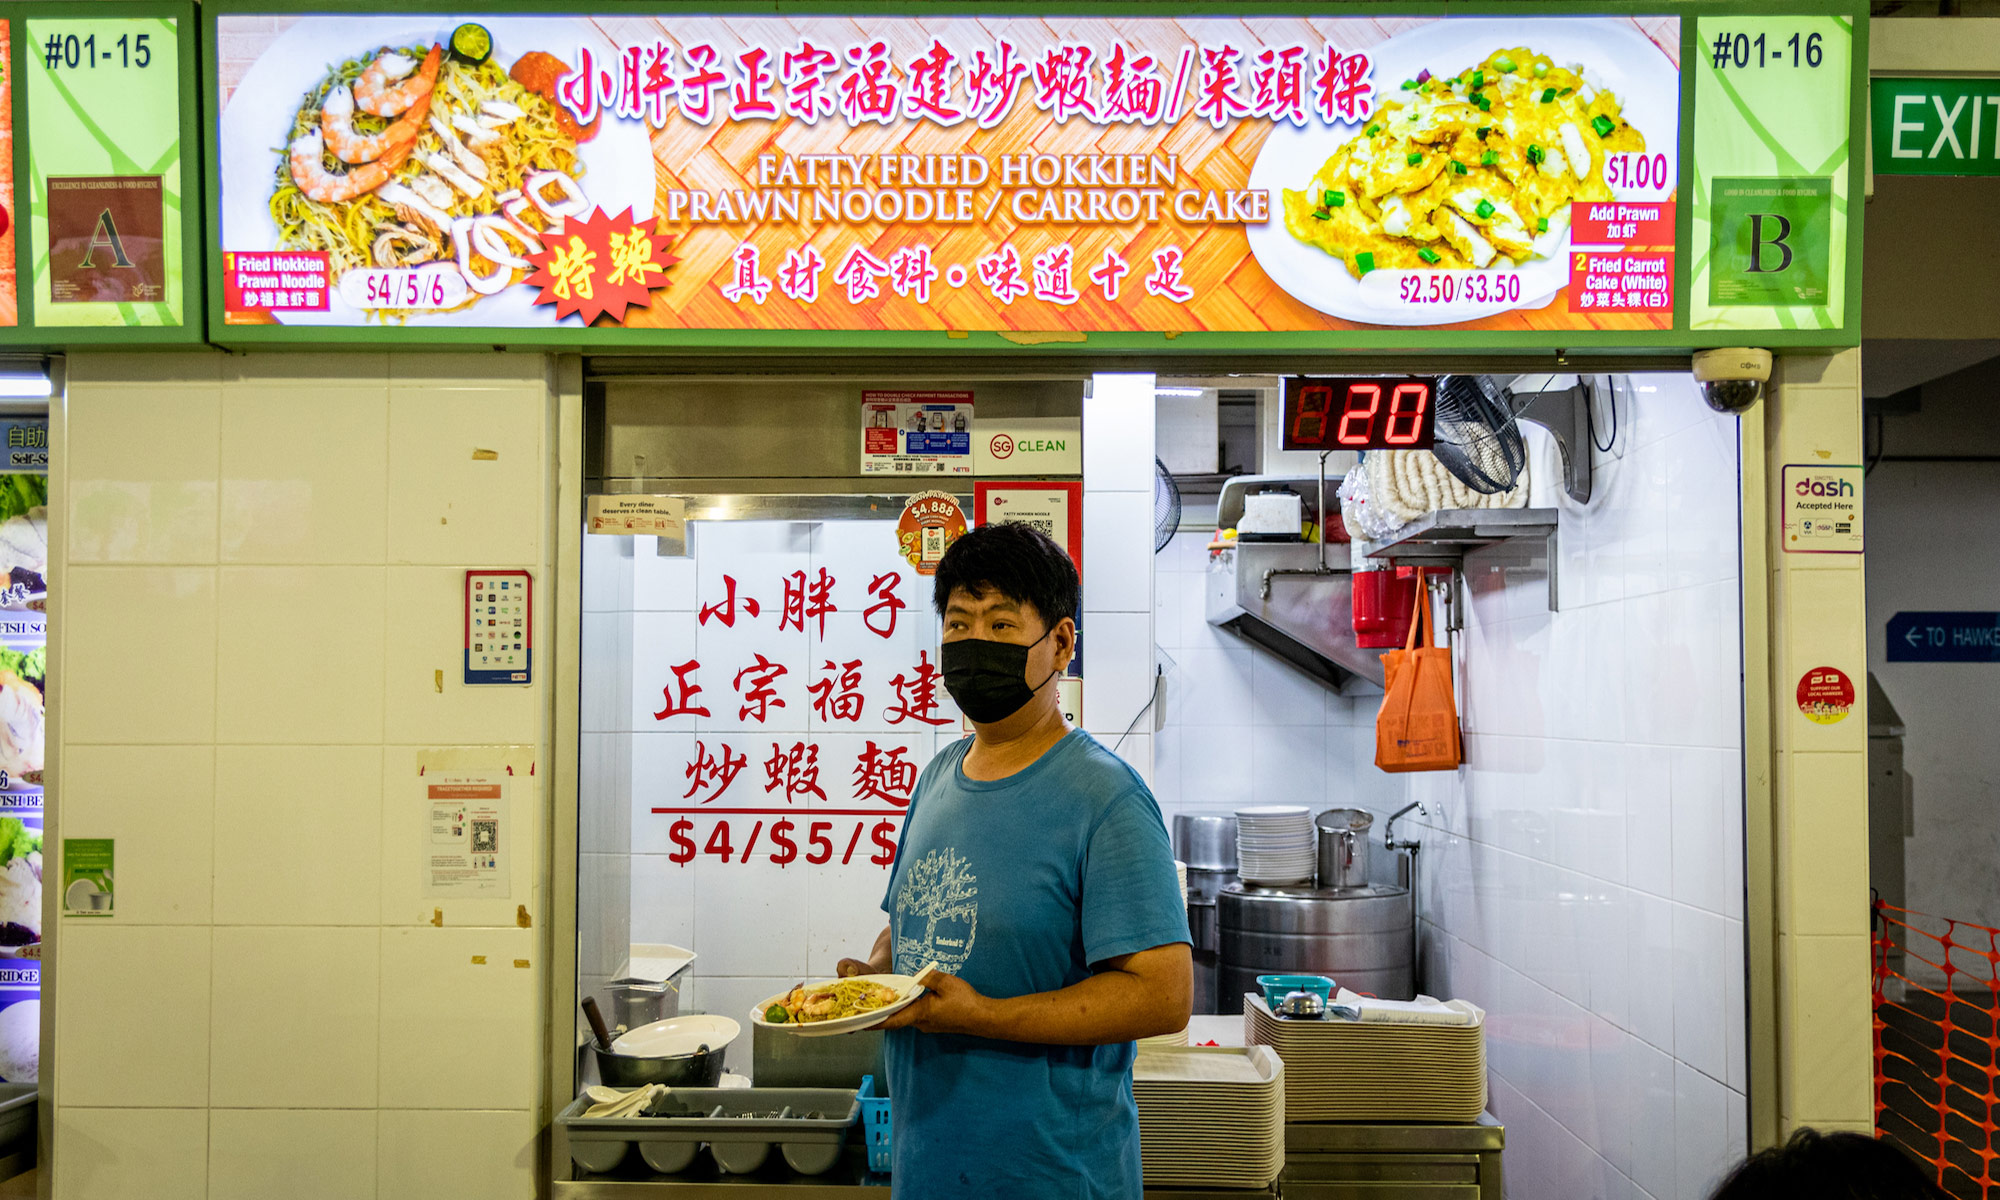 Owner of Fatty Fried Hokkien Prawn Noodle/Carrot Cake, available on WhyQ for delivery.